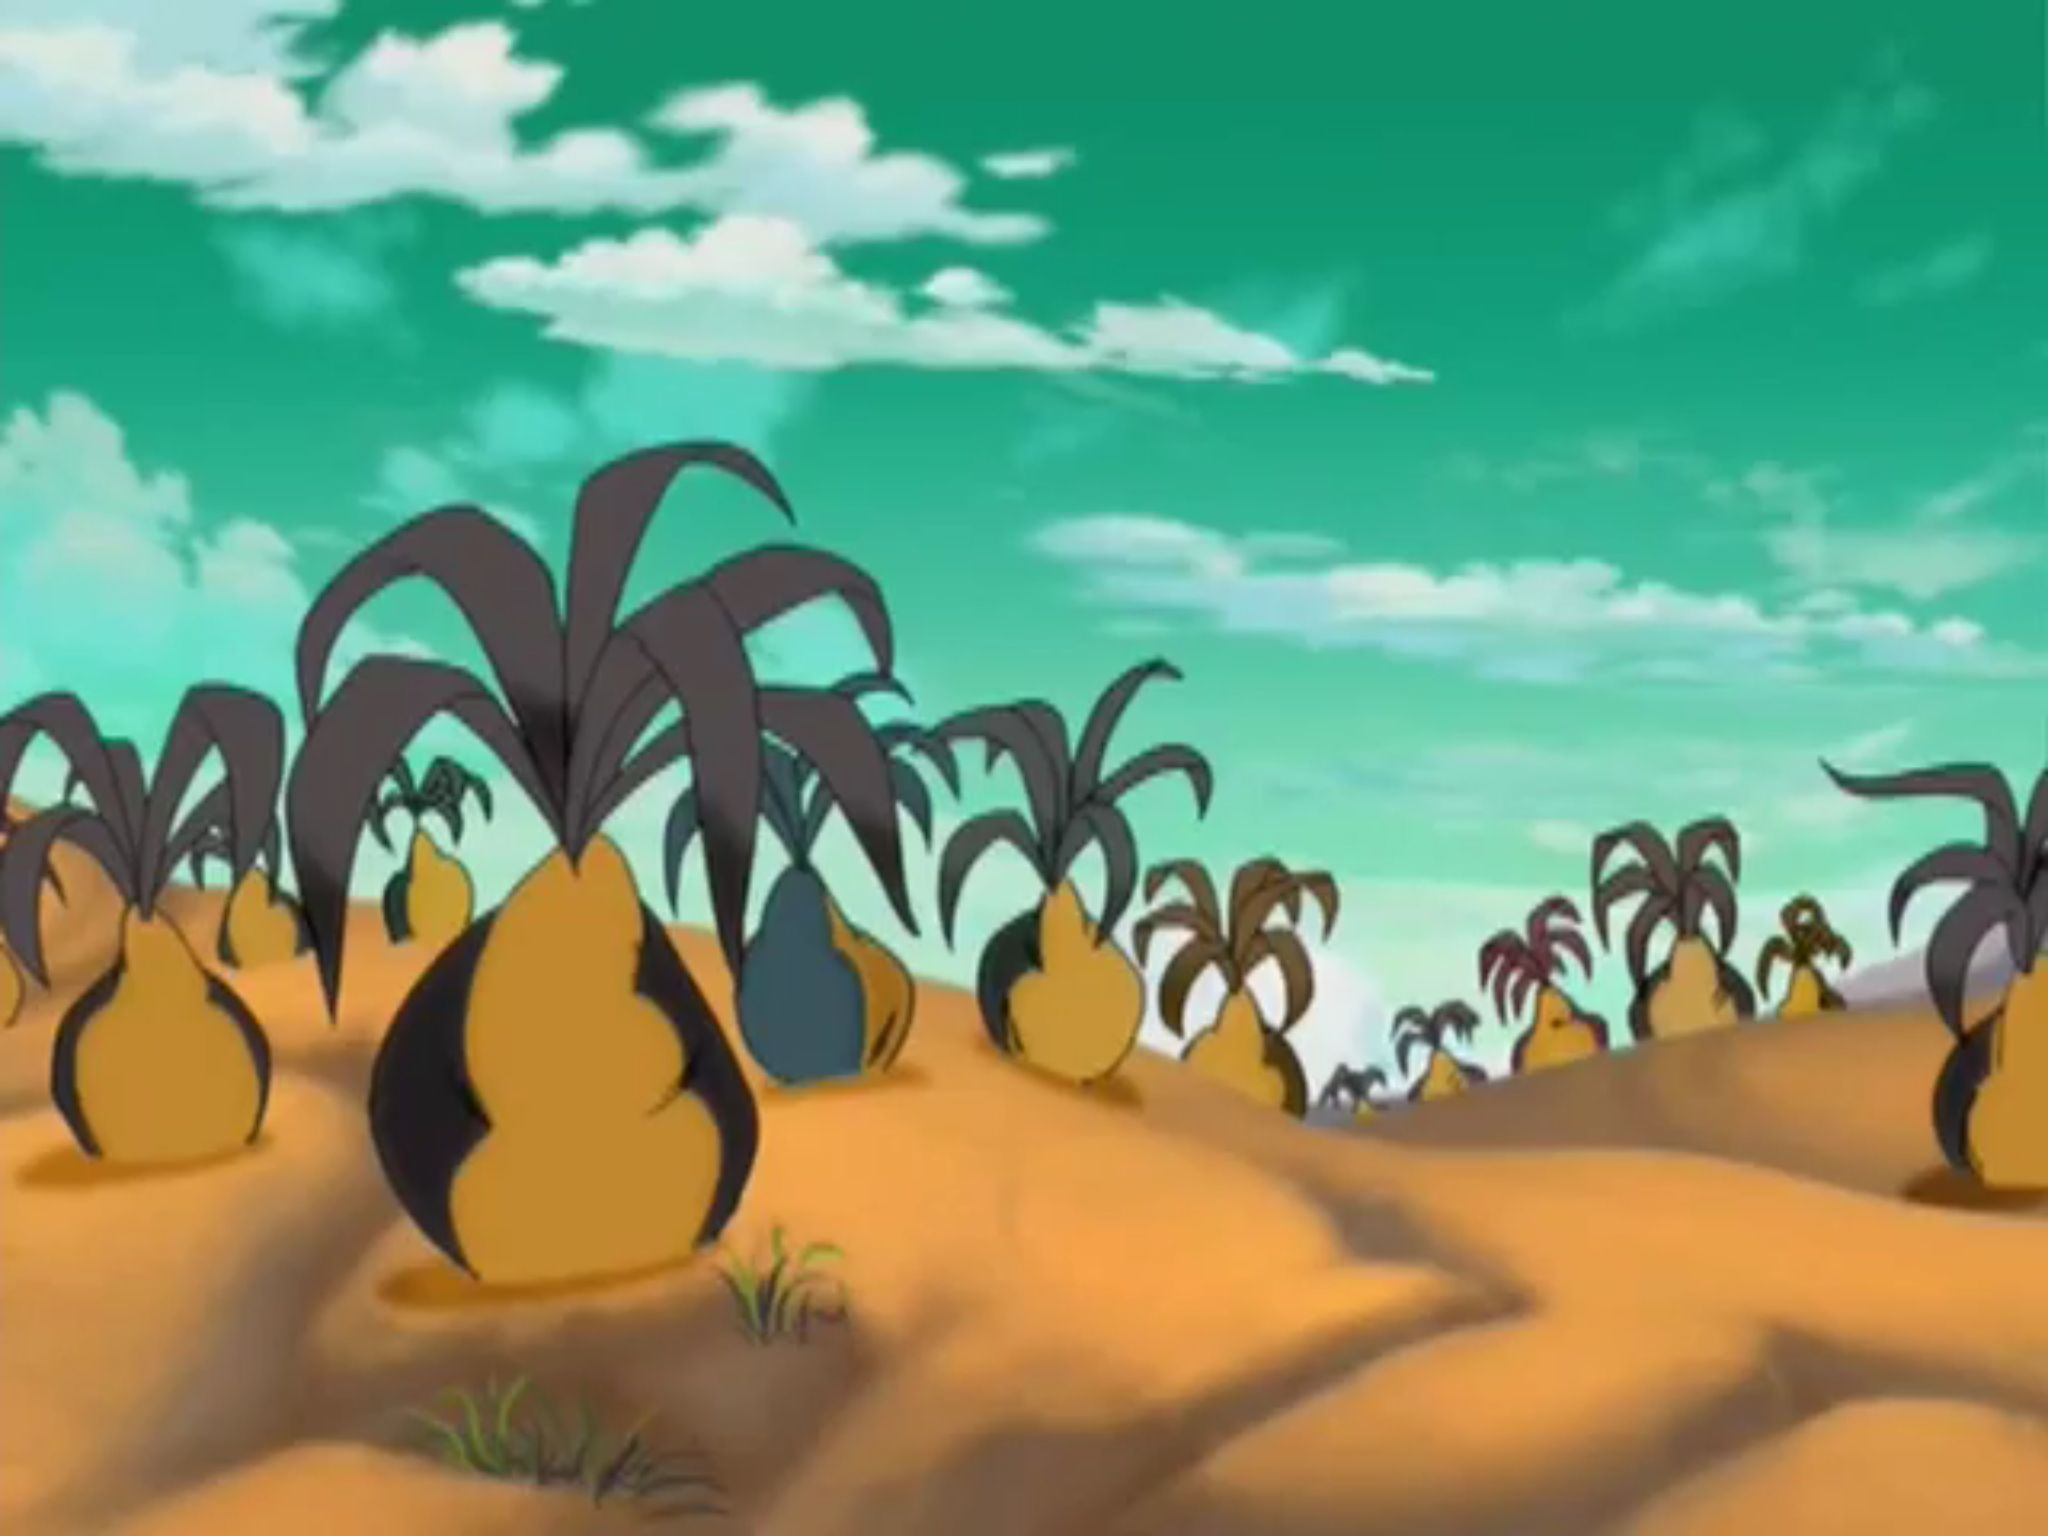 Up with your tush and you look like a bush! 😂 | Land before time ...